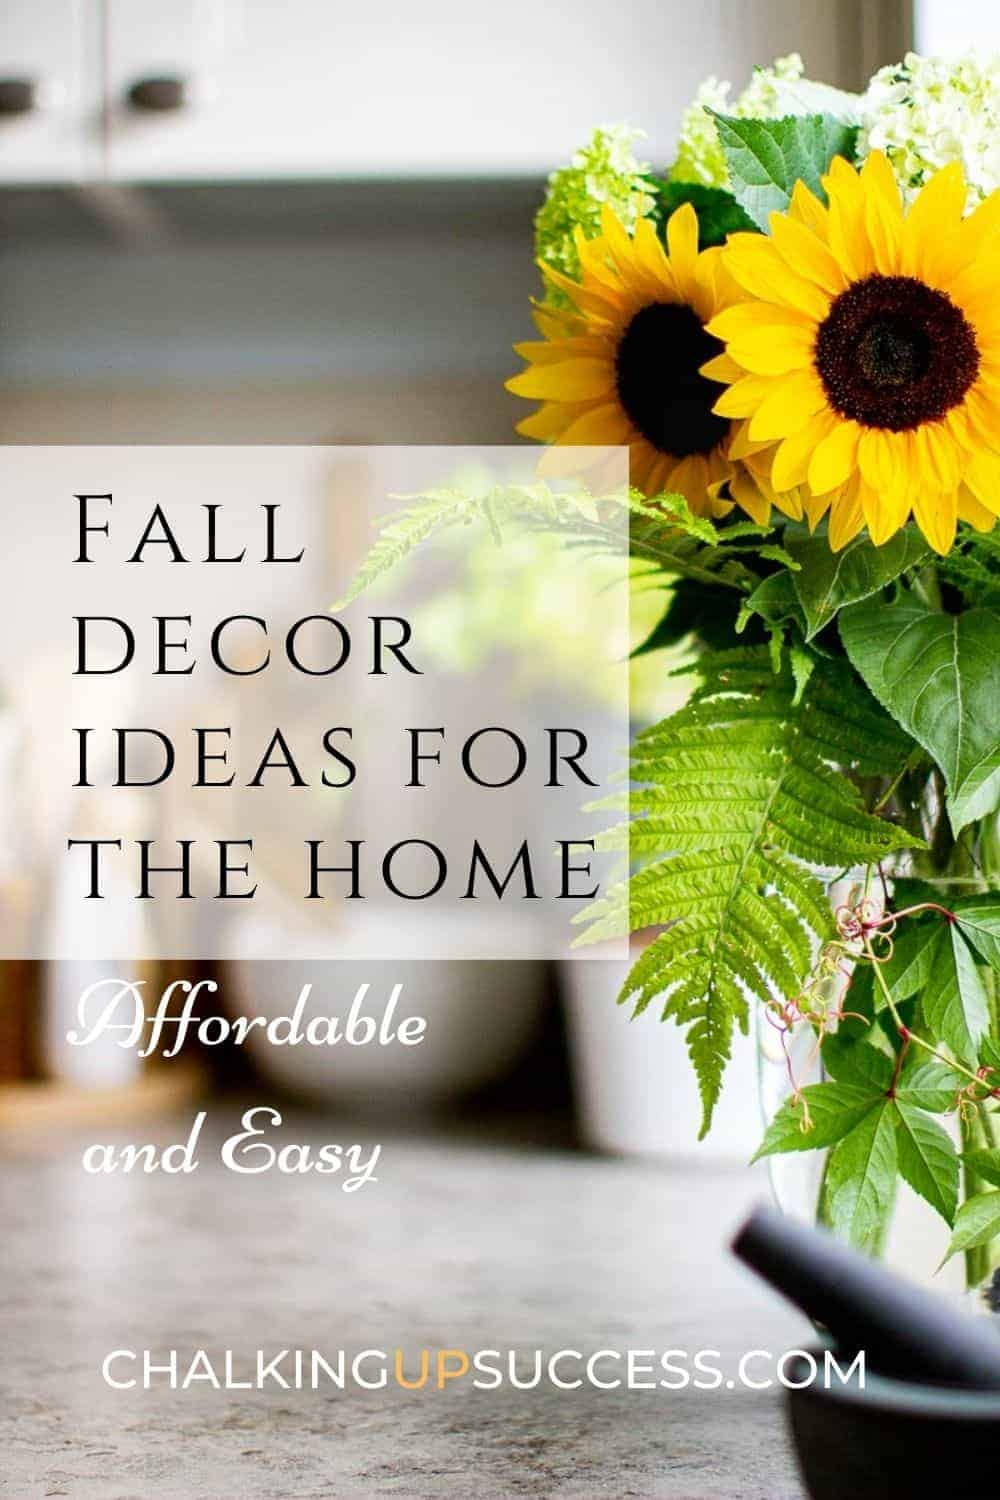 You can pin this image to Pinterest - sunflowers in a vase on the kitchen counter.